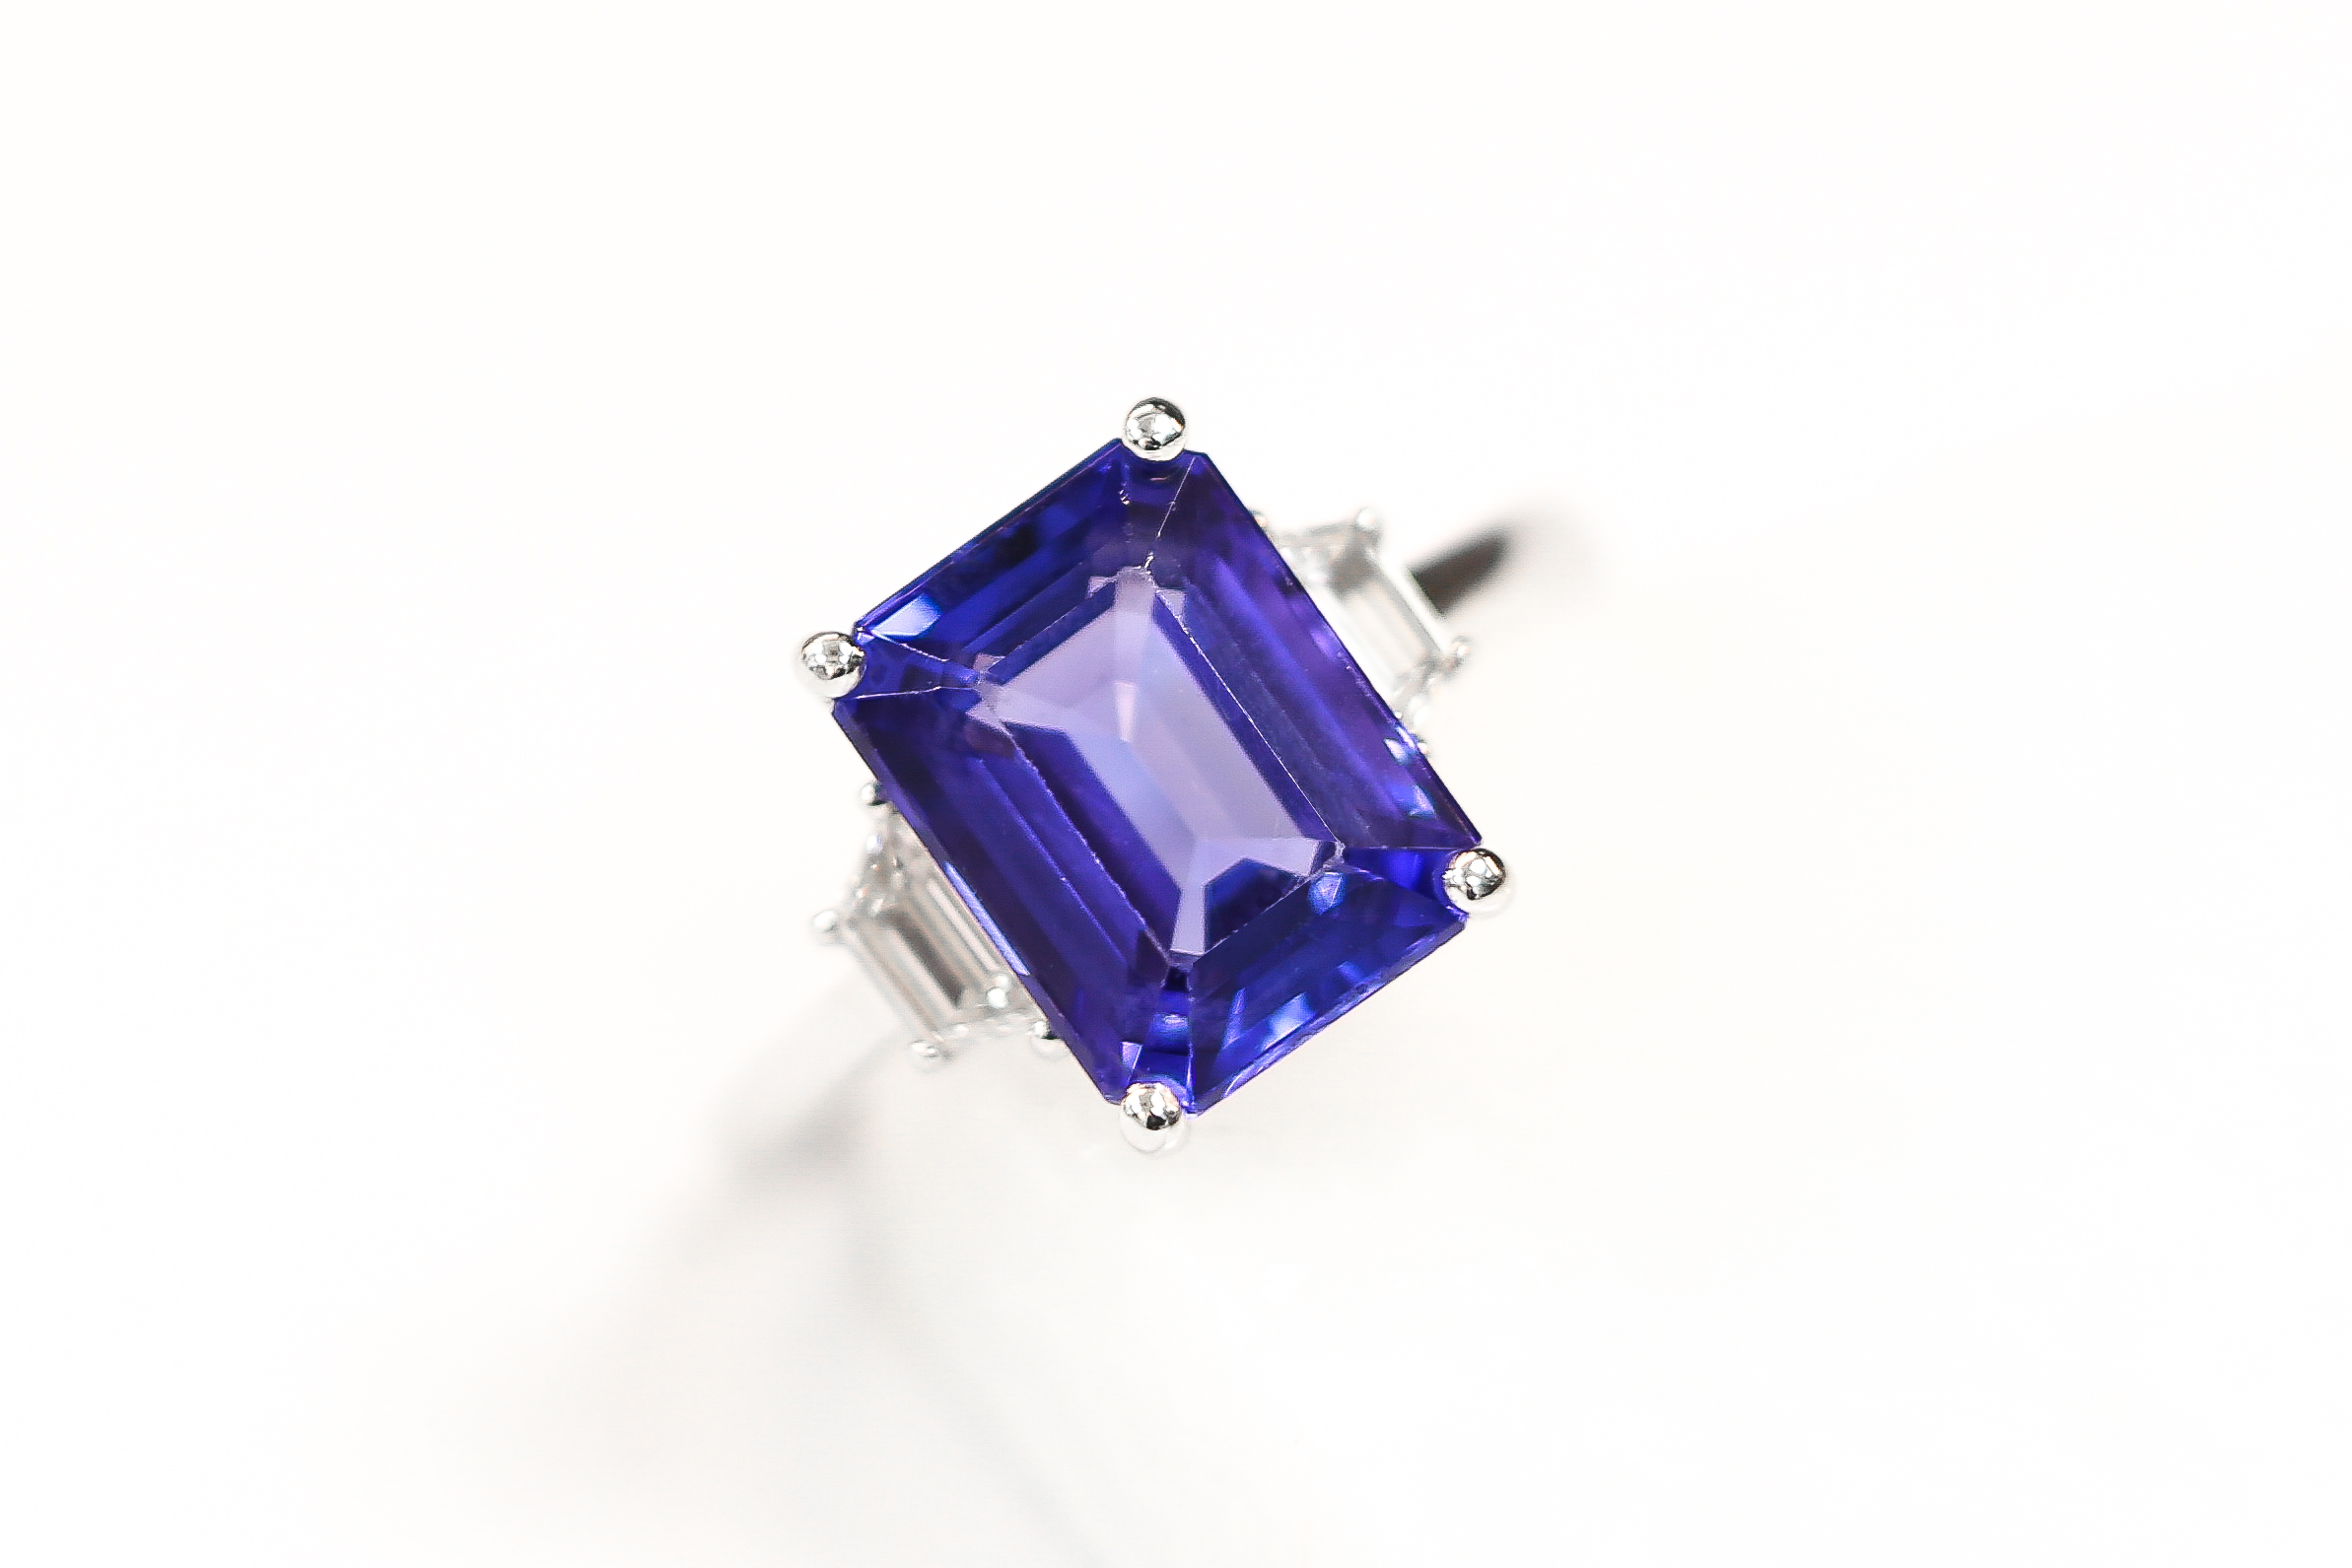 Sapphire and diamond cocktail ring, by Queensmith